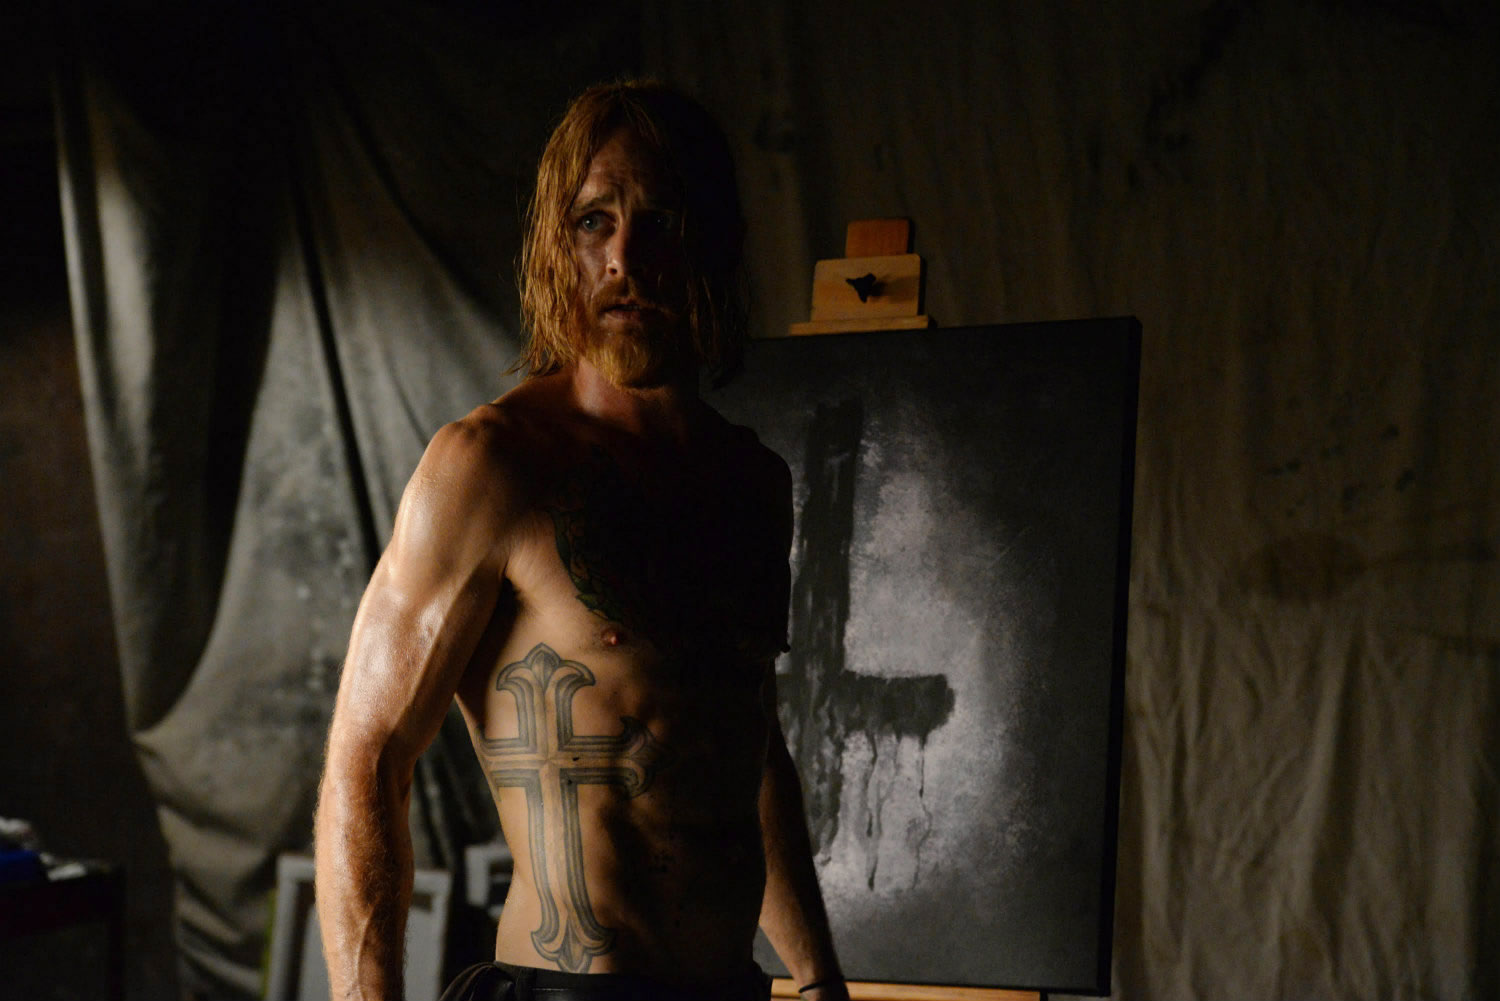 man with christ cross tattooed on body, in the devil's candy movie